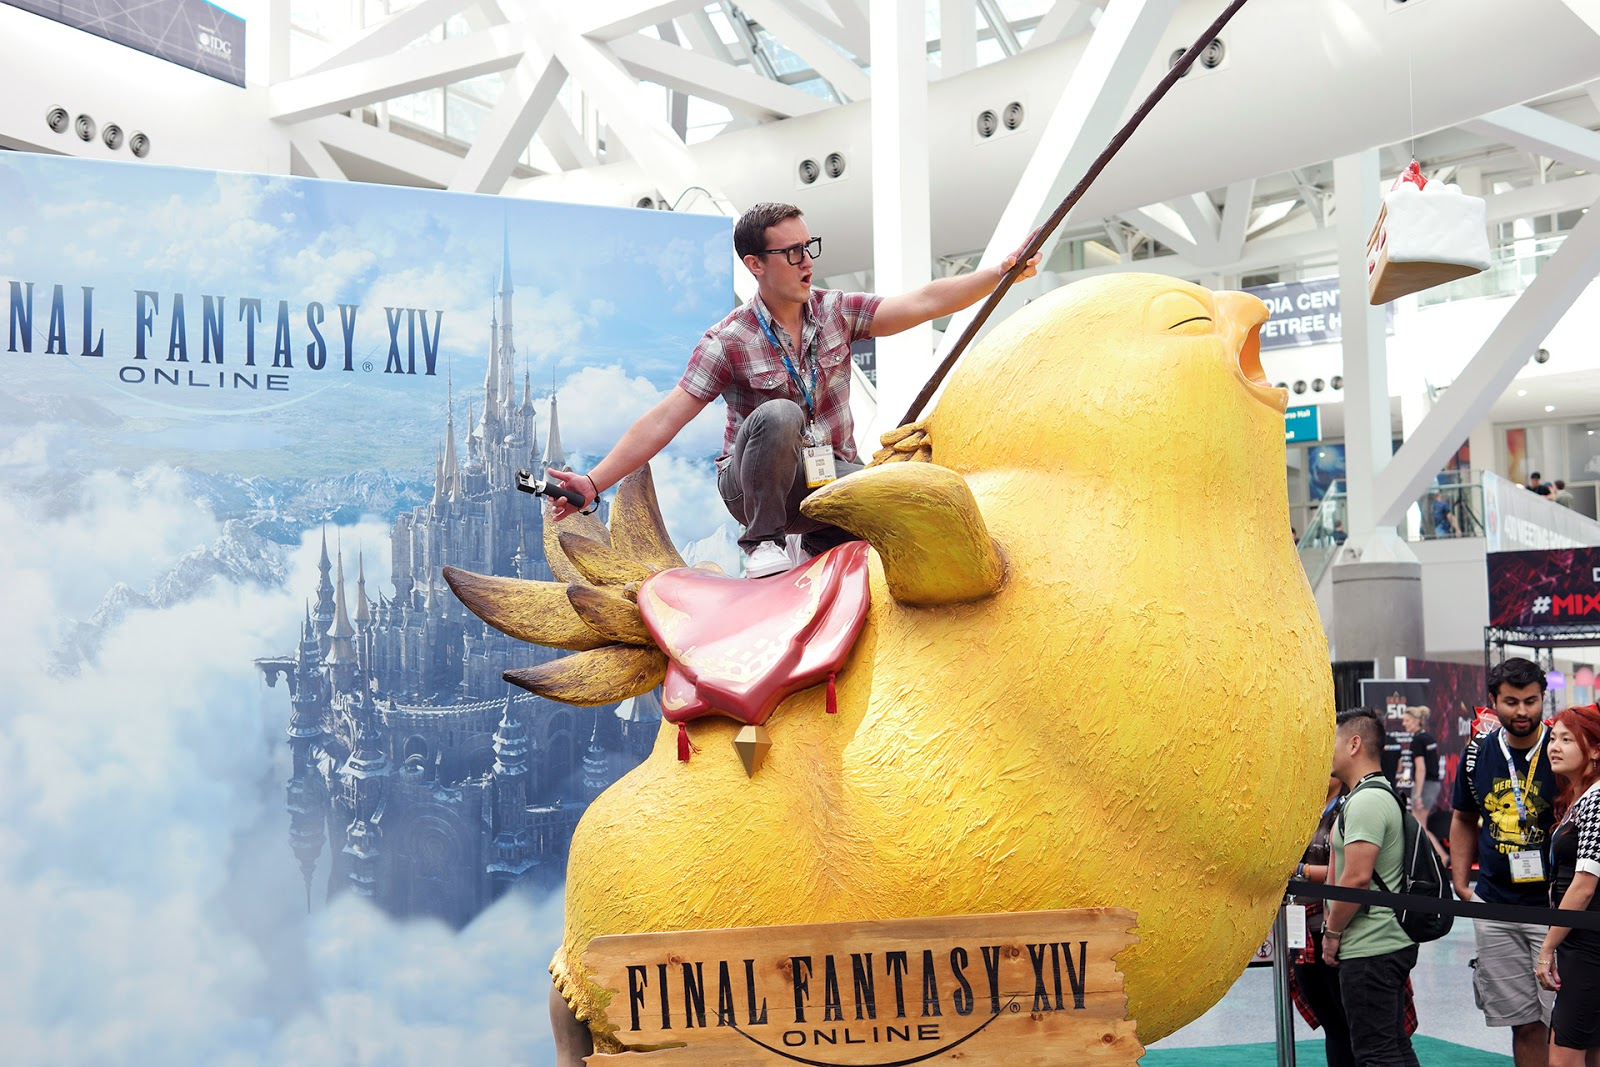 Fat Chocobo Final Fantasy XIV at E3